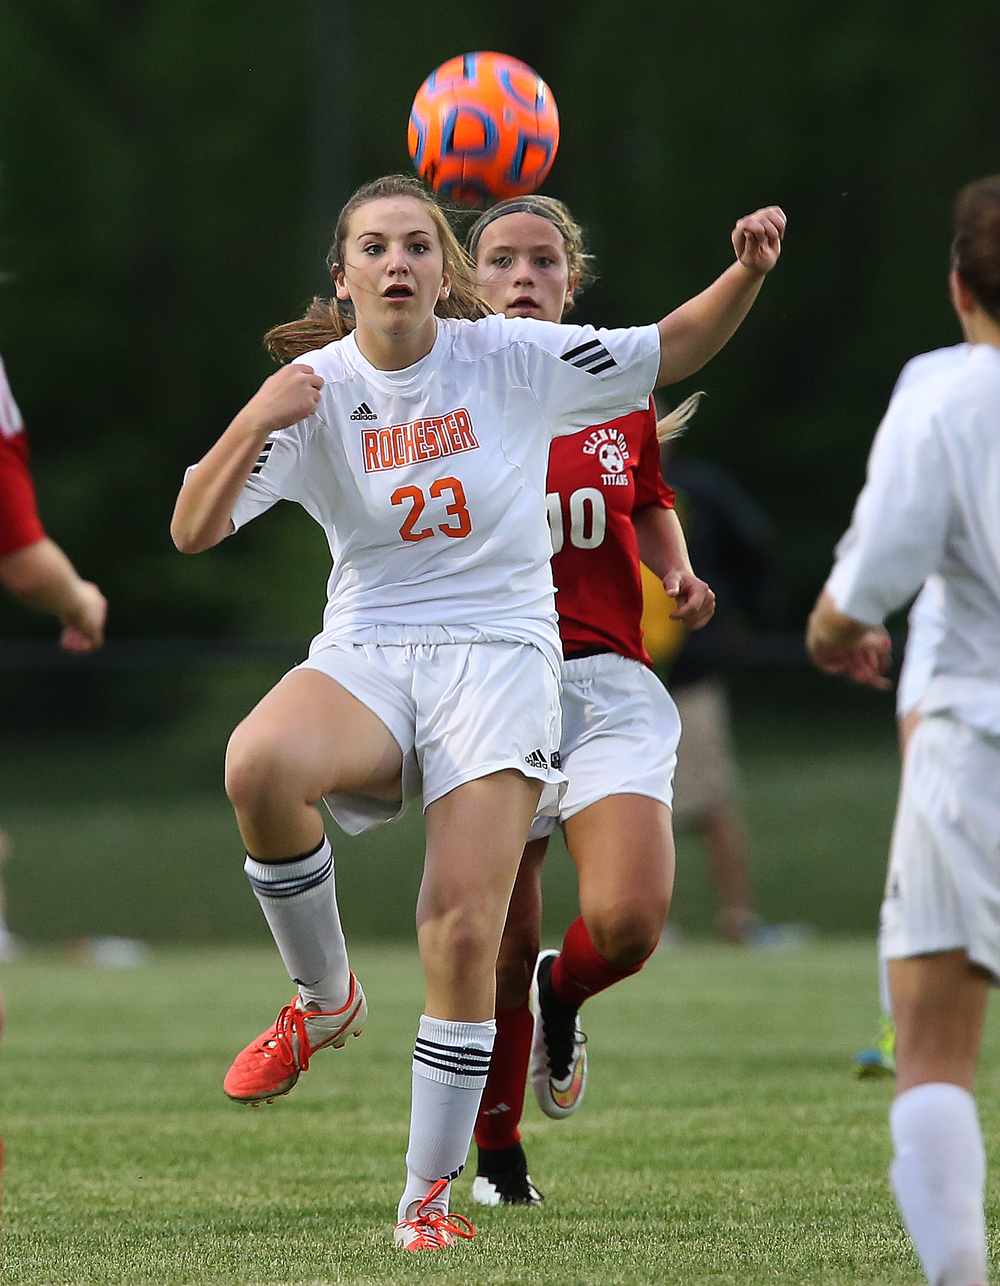 Rochester's Emma Hughes prepares to receive a pass. With neither team scoring, a weather delay with 8:45 remaining in the game forced the suspension of play between Rochester and Chatham Glenwood in girls high school soccer action at Rochester Elementary School on Thursday evening, May 7, 2015. David Spencer/The State Journal-Register